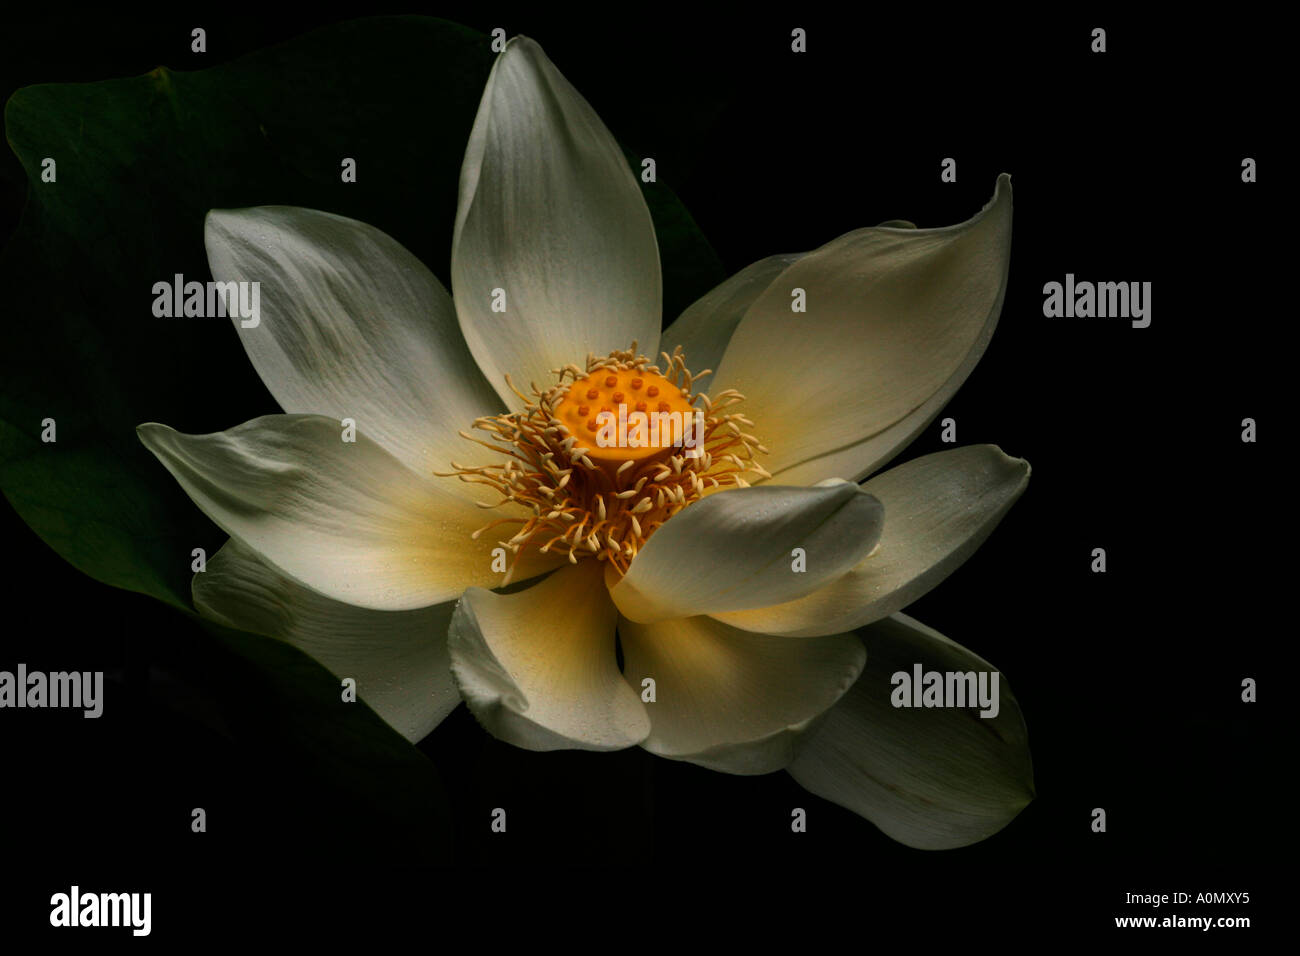 a perfect lotus flower in bloom dark and moody stock photo, Beautiful flower